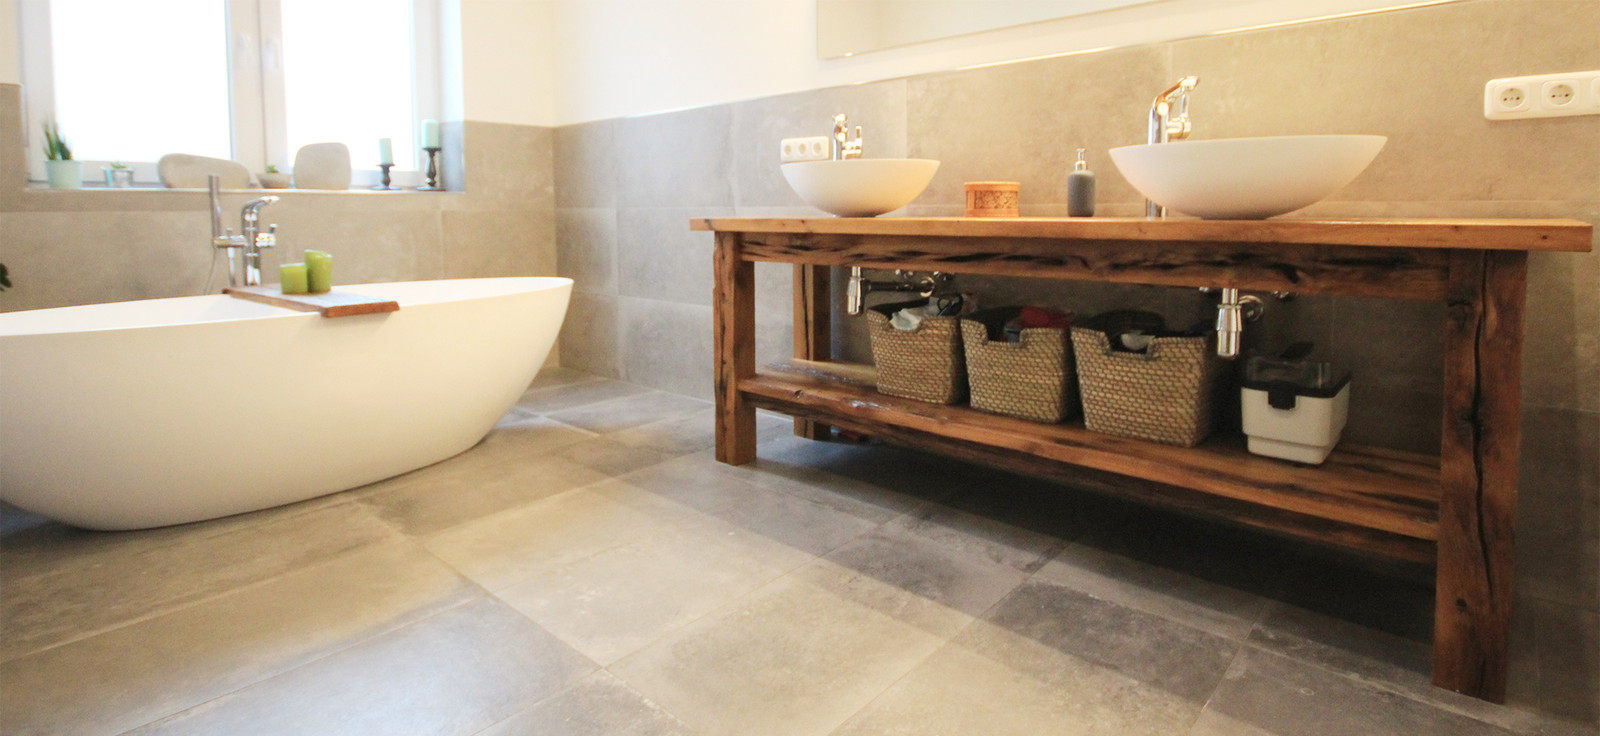 Badewannenablage Altholz Altholzdesign Galerie